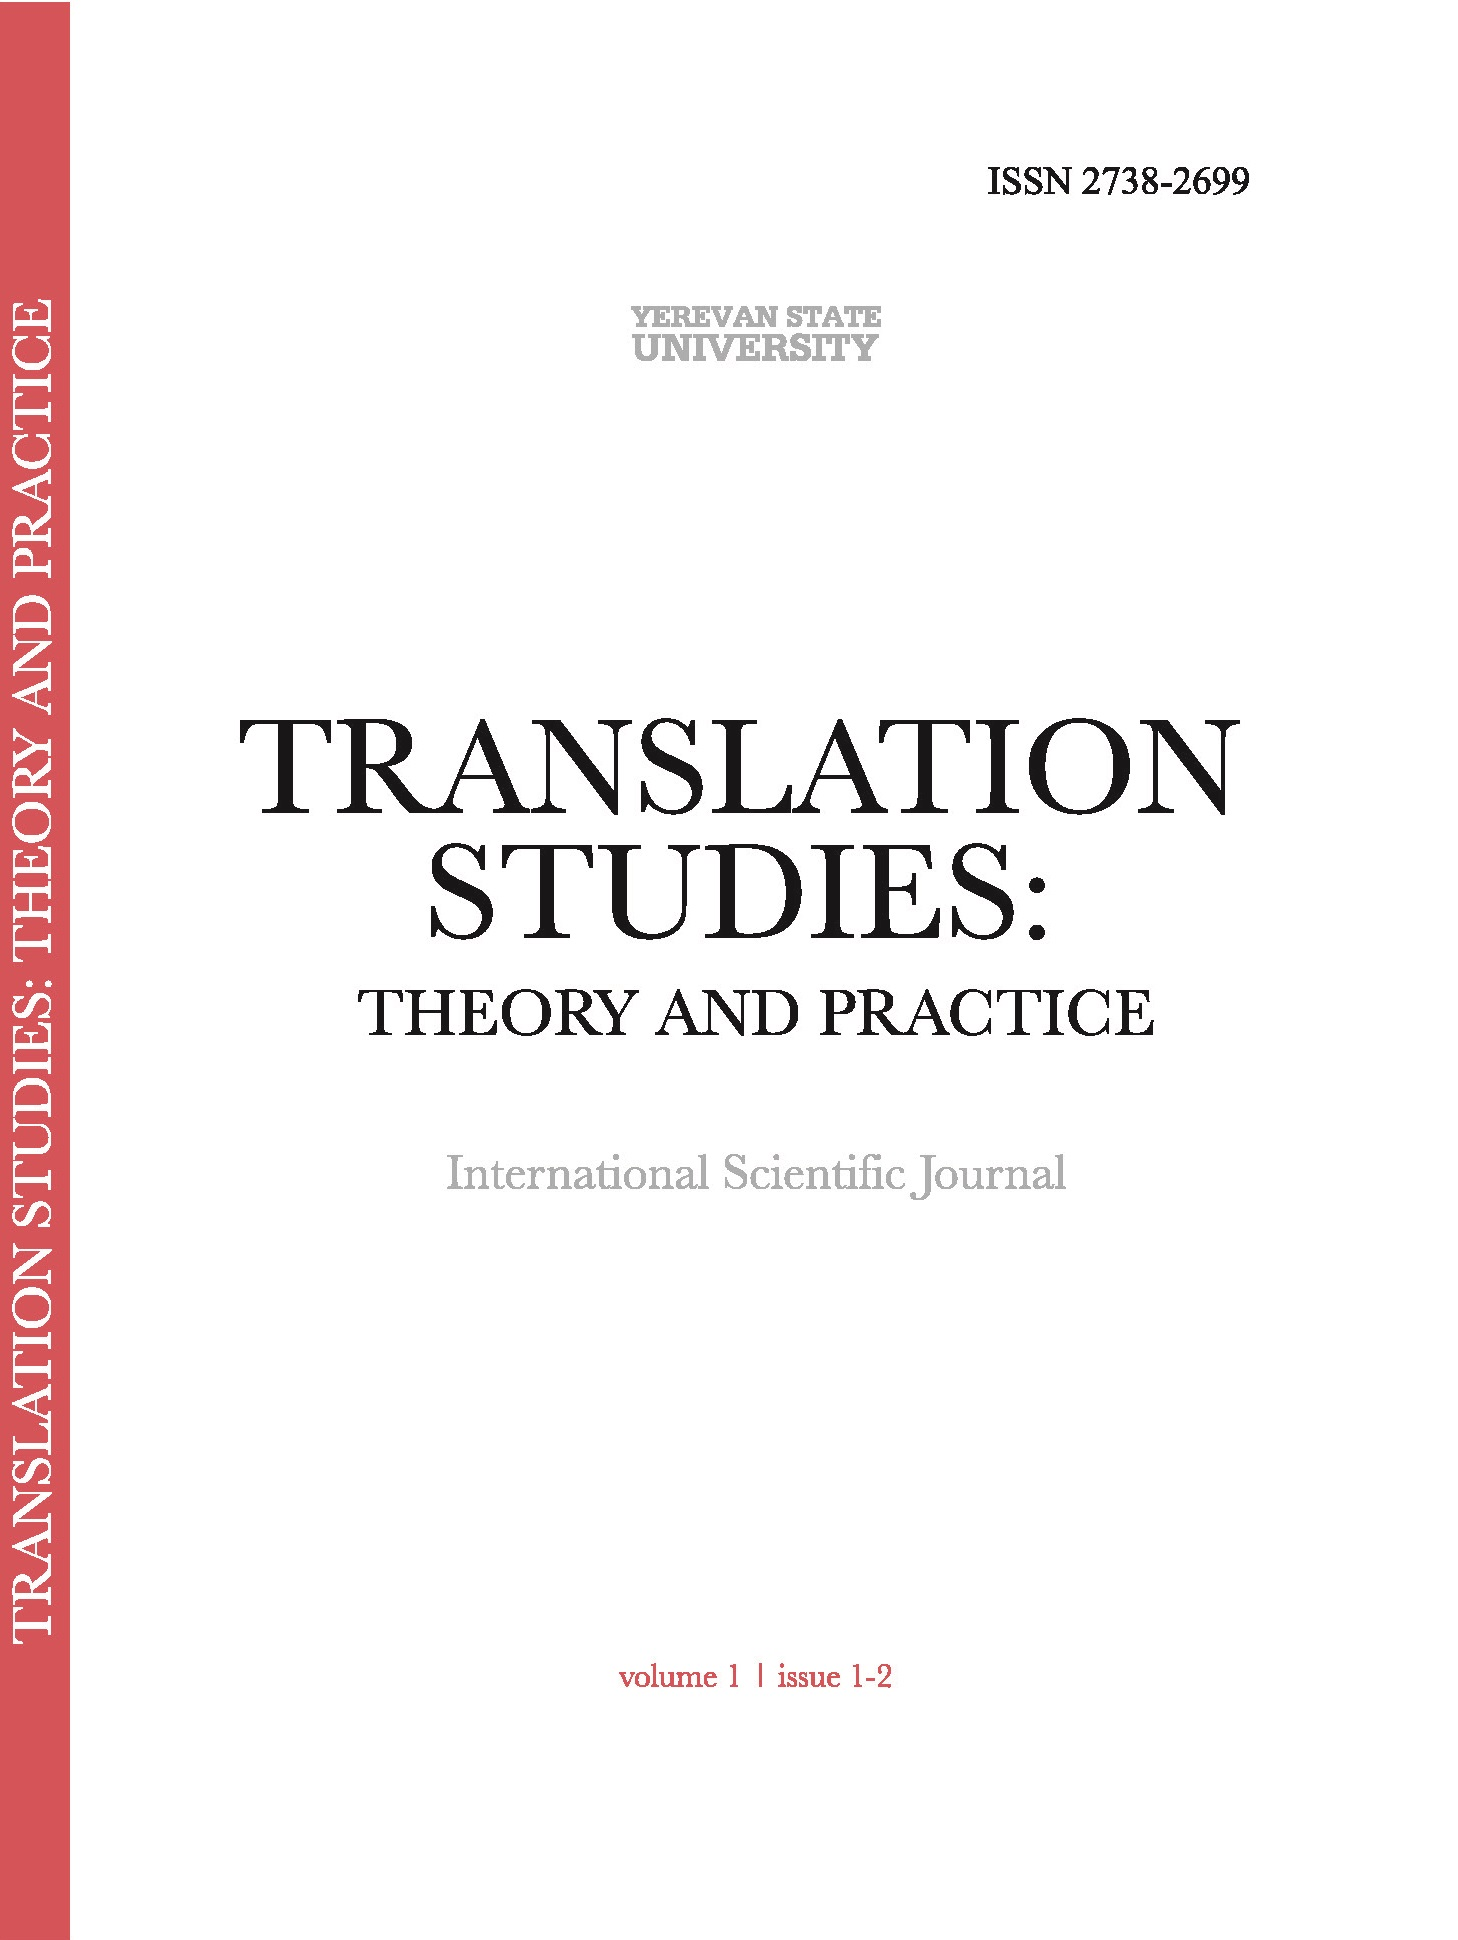 TRANSLATION STUDIES: THEORY AND PRACTICE